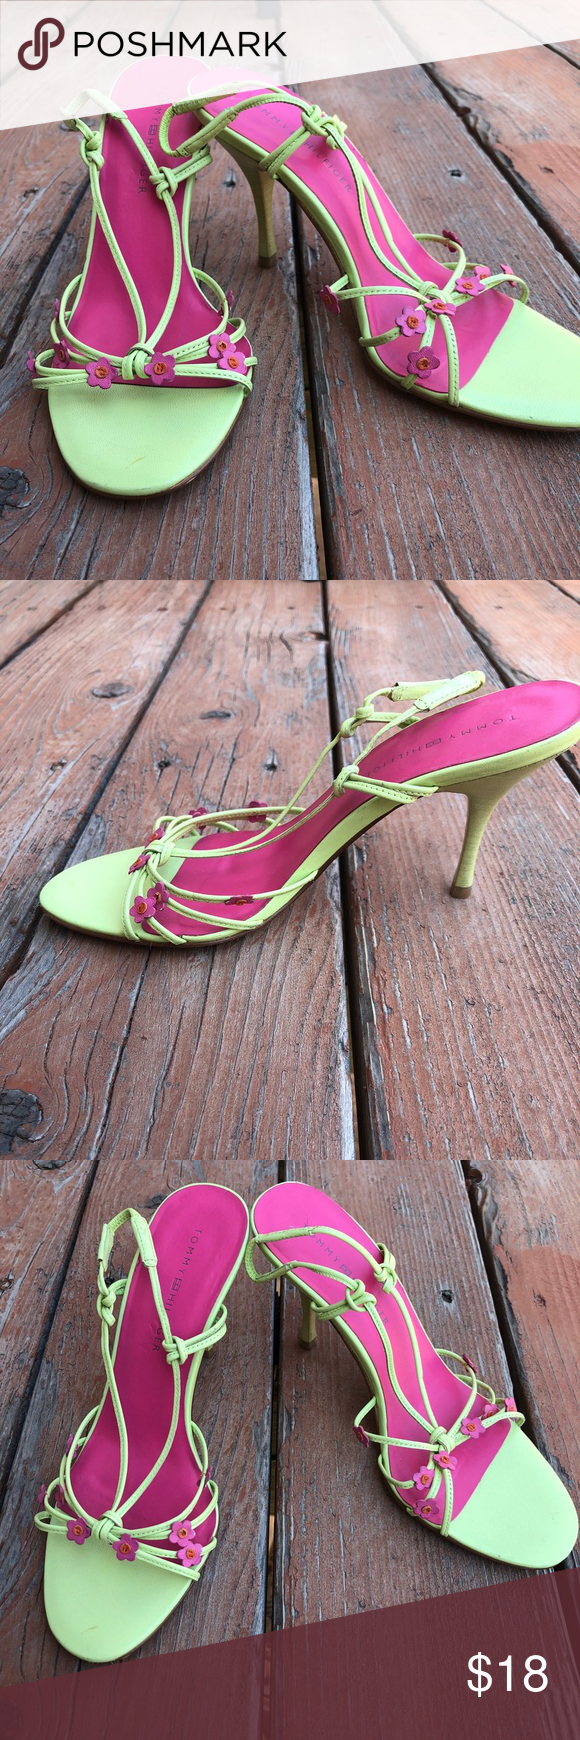 a6b90dc71 Tommy Hilfiger green pink Floral high heels shoes Tommy Hilfiger women s  lime green and pink strappy